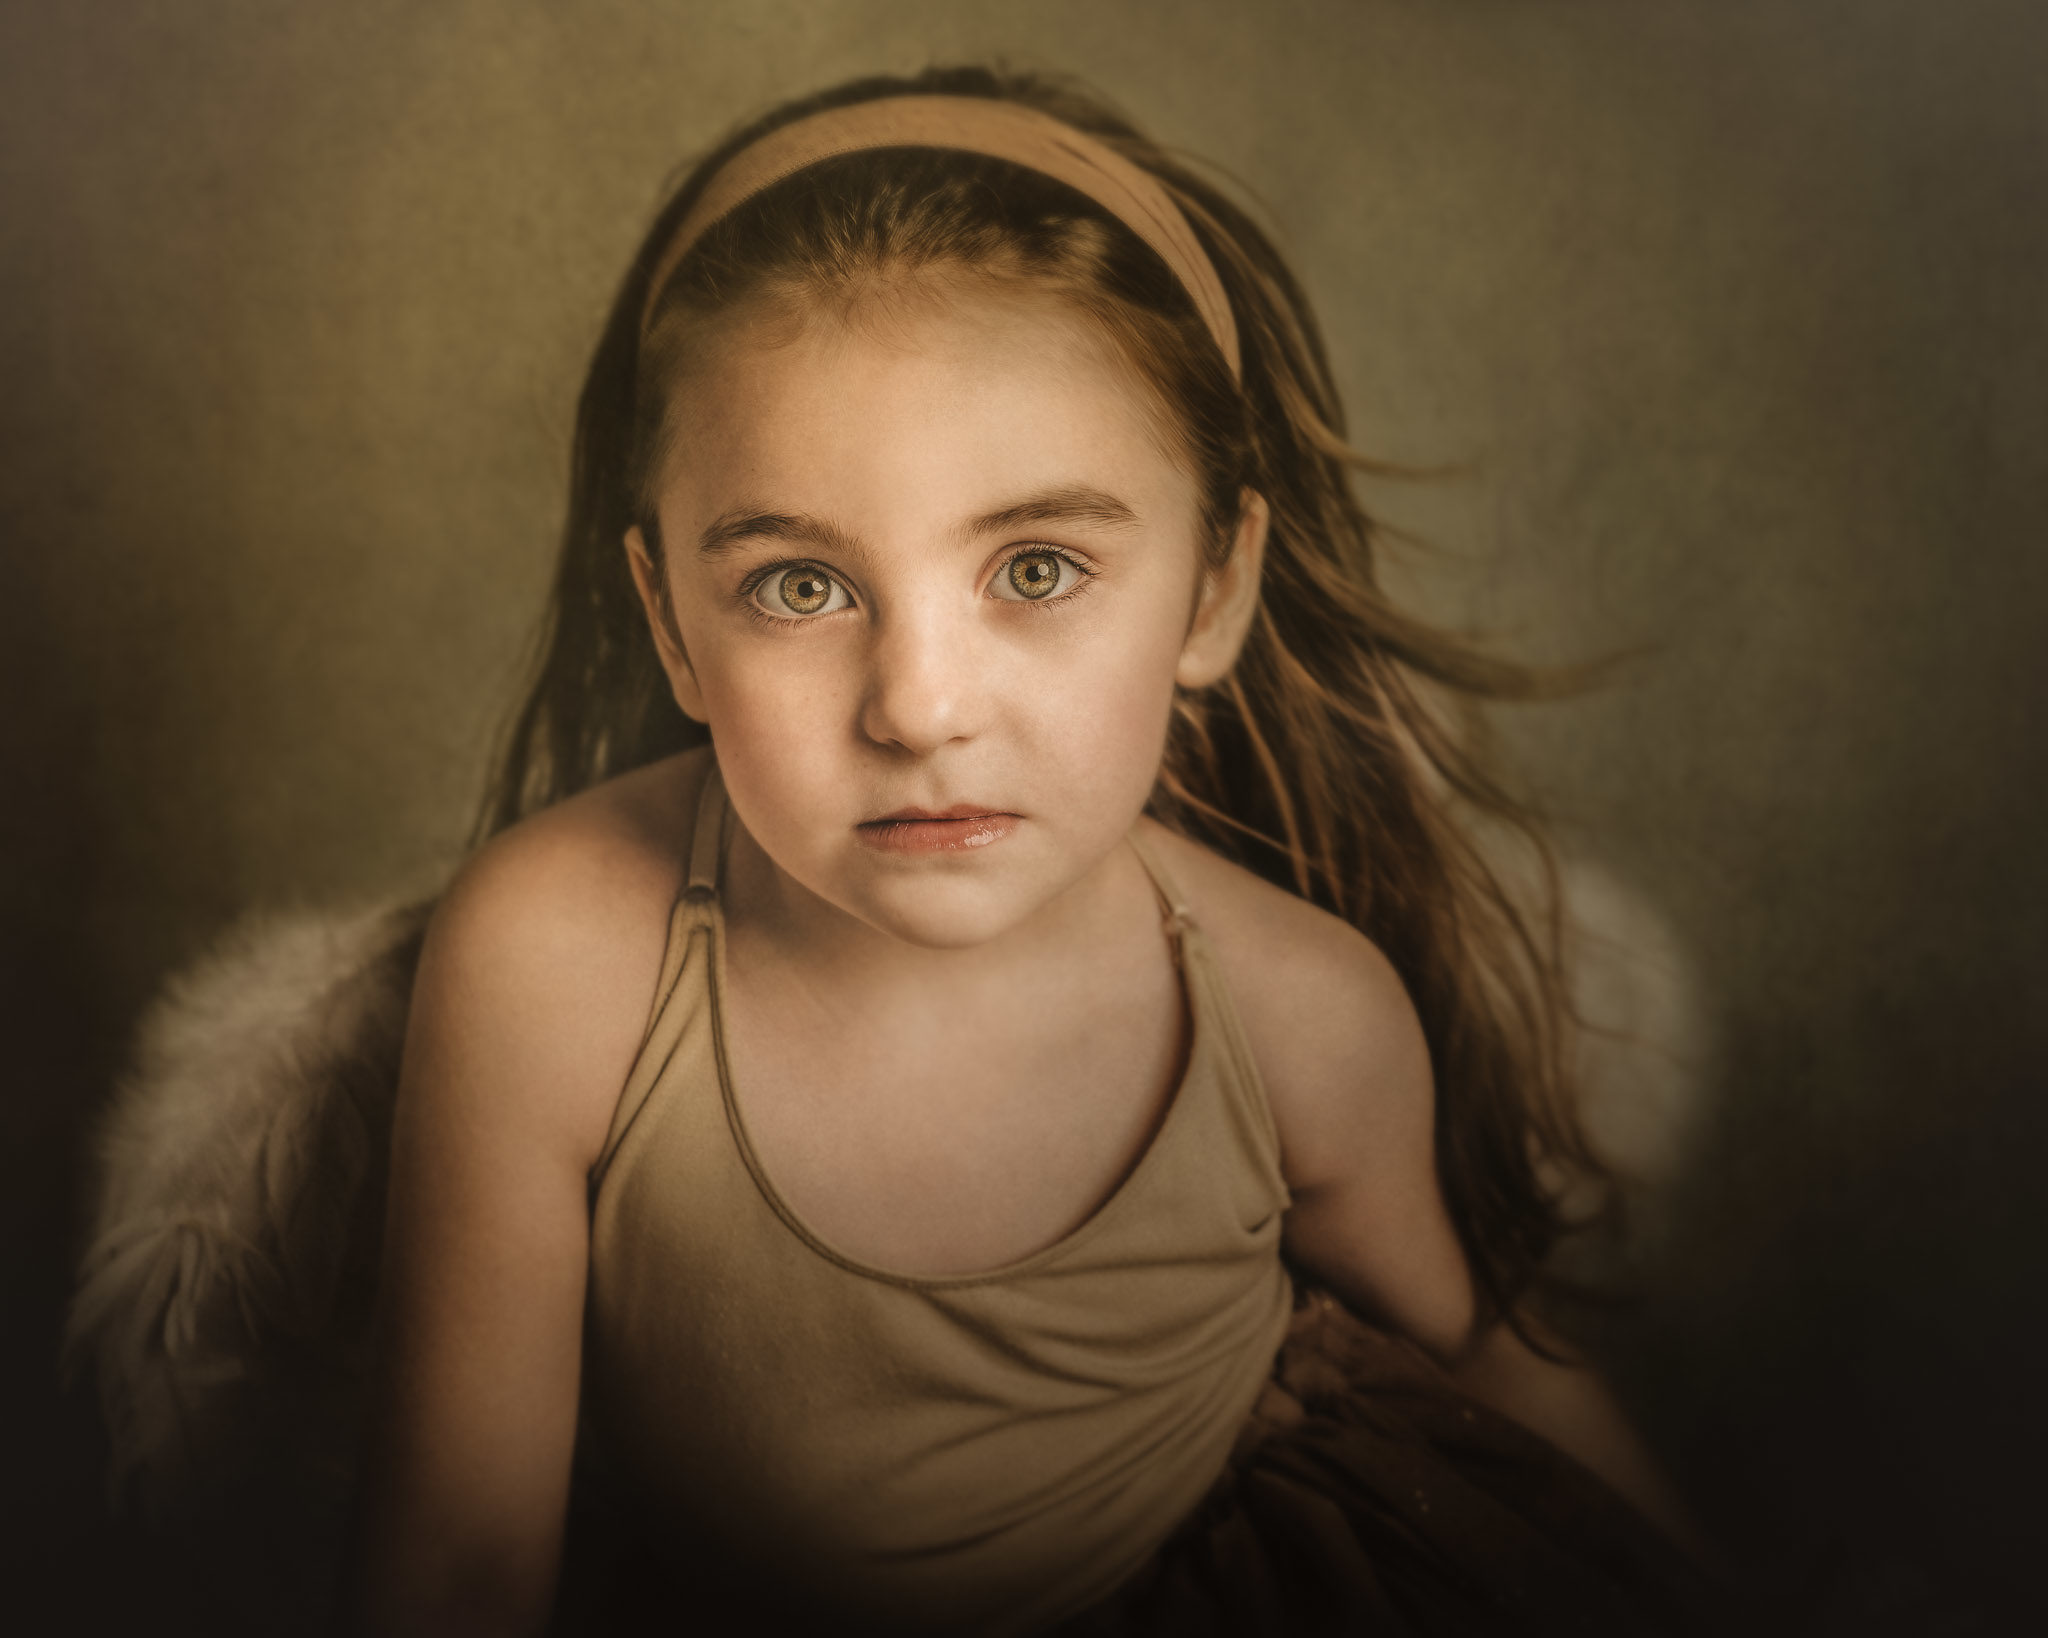 JAZMÍN (5 AÑOS) – LITTLE ANGELS 2018